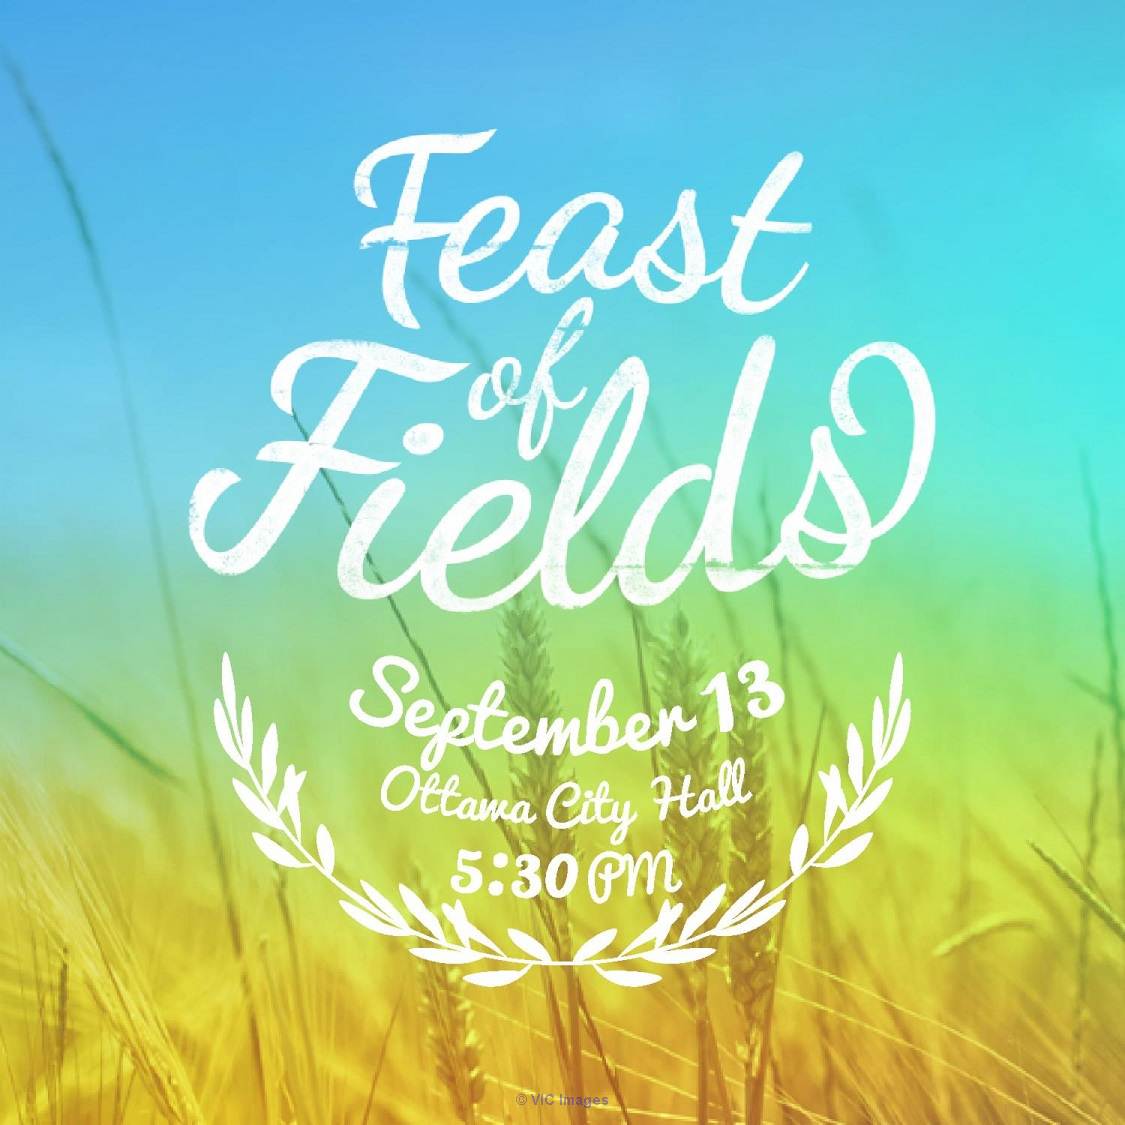 Feast of Fields, Organic and Sustainable Food